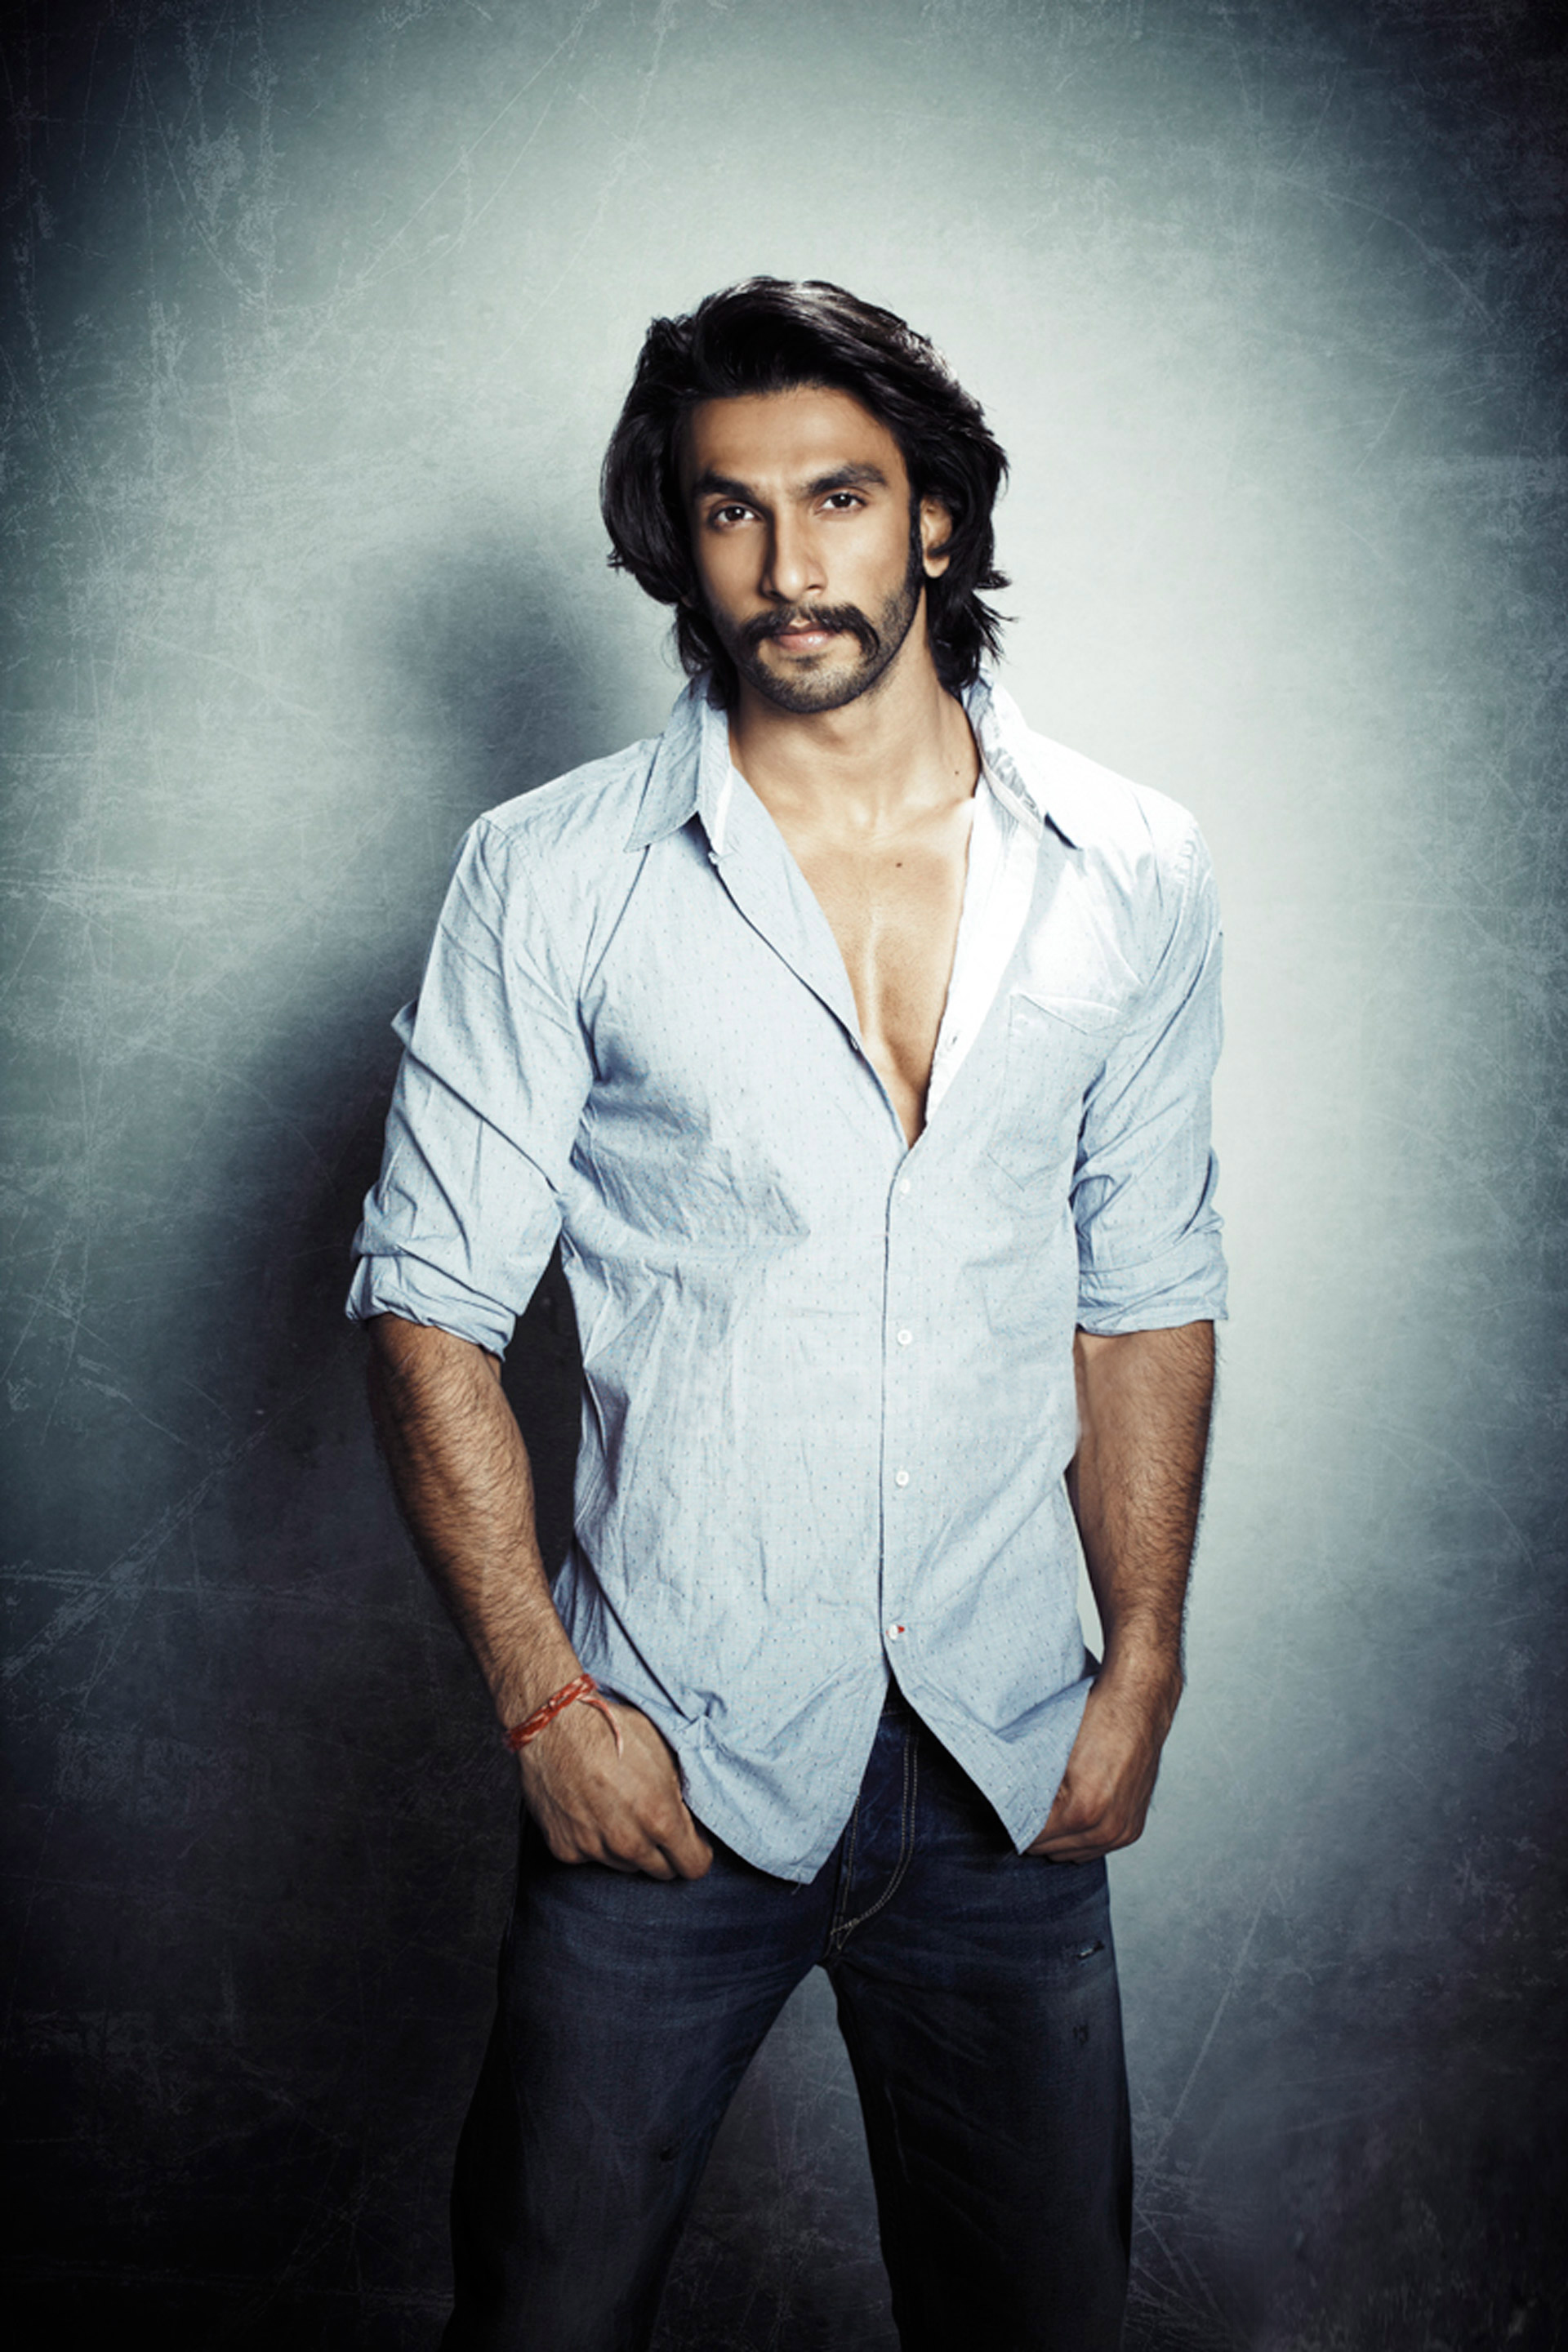 Ranveer Singh HD Wallpapers • PoPoPics.com